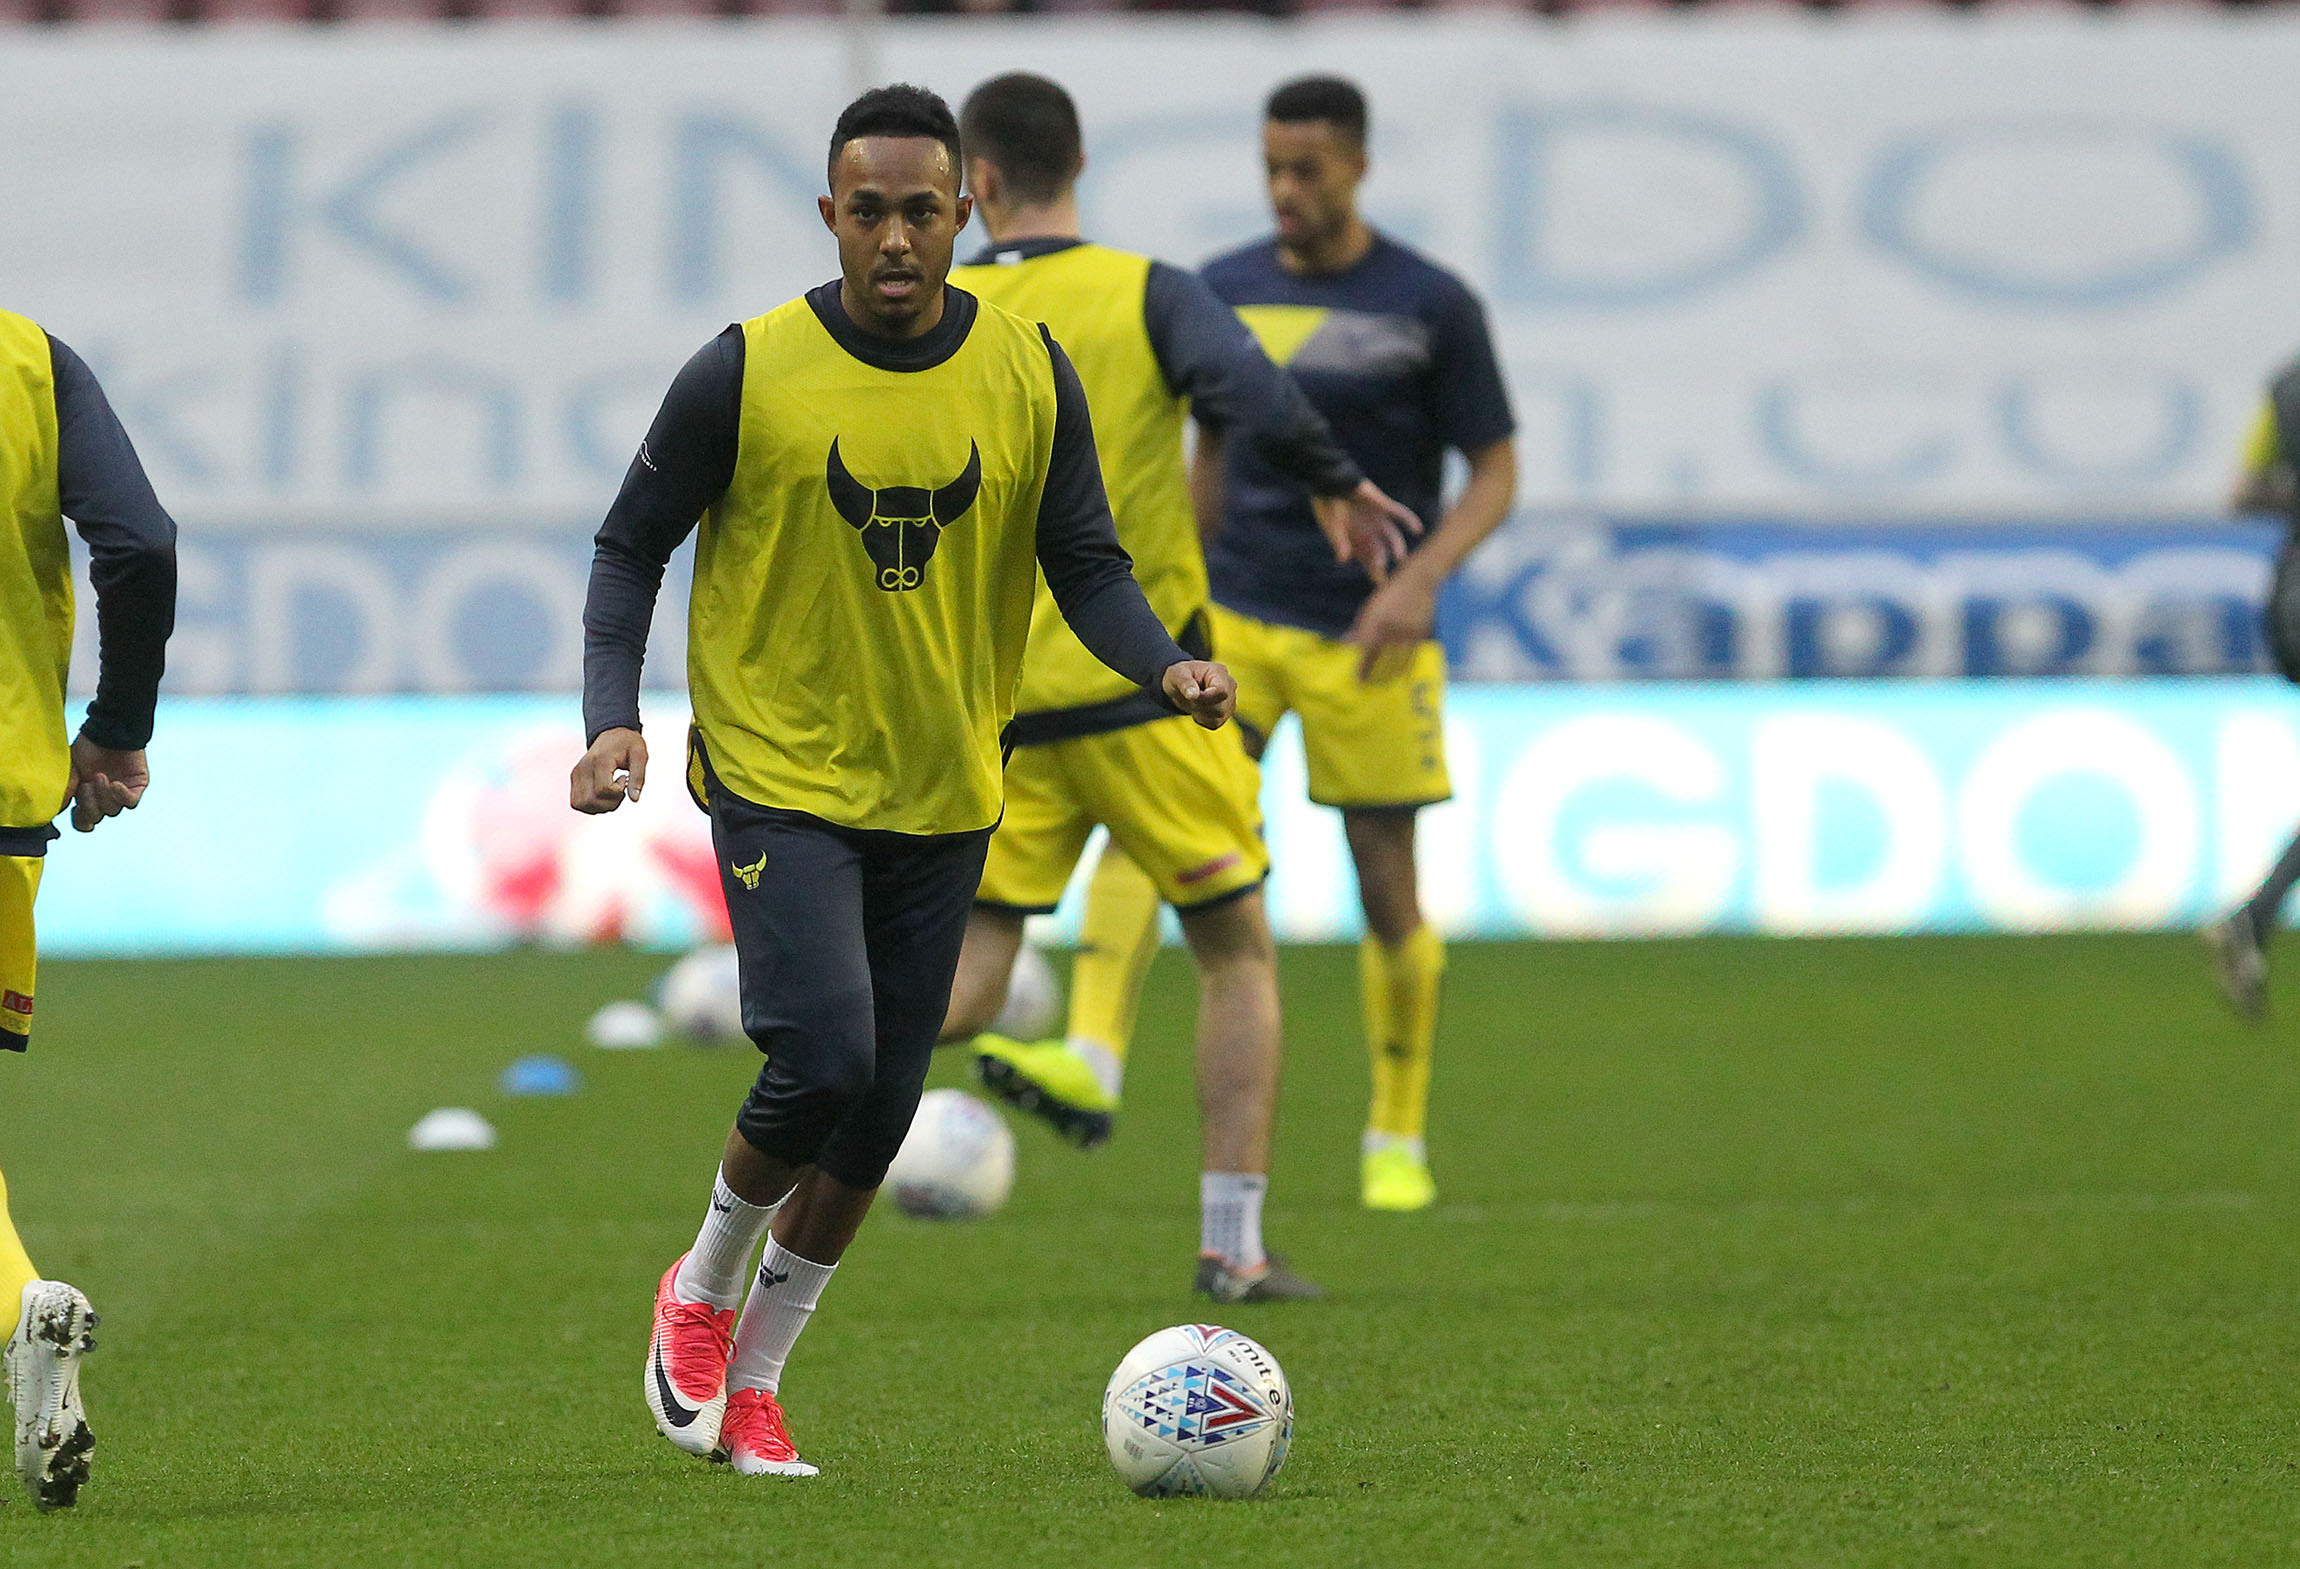 BACK IN THE FOLD: Rob Hall, pictured warming up for Oxford United at Wigan on Tuesday night, could play a cameo role at Doncaster tomorrow after recovering from injuryPicture: Richard Parkes